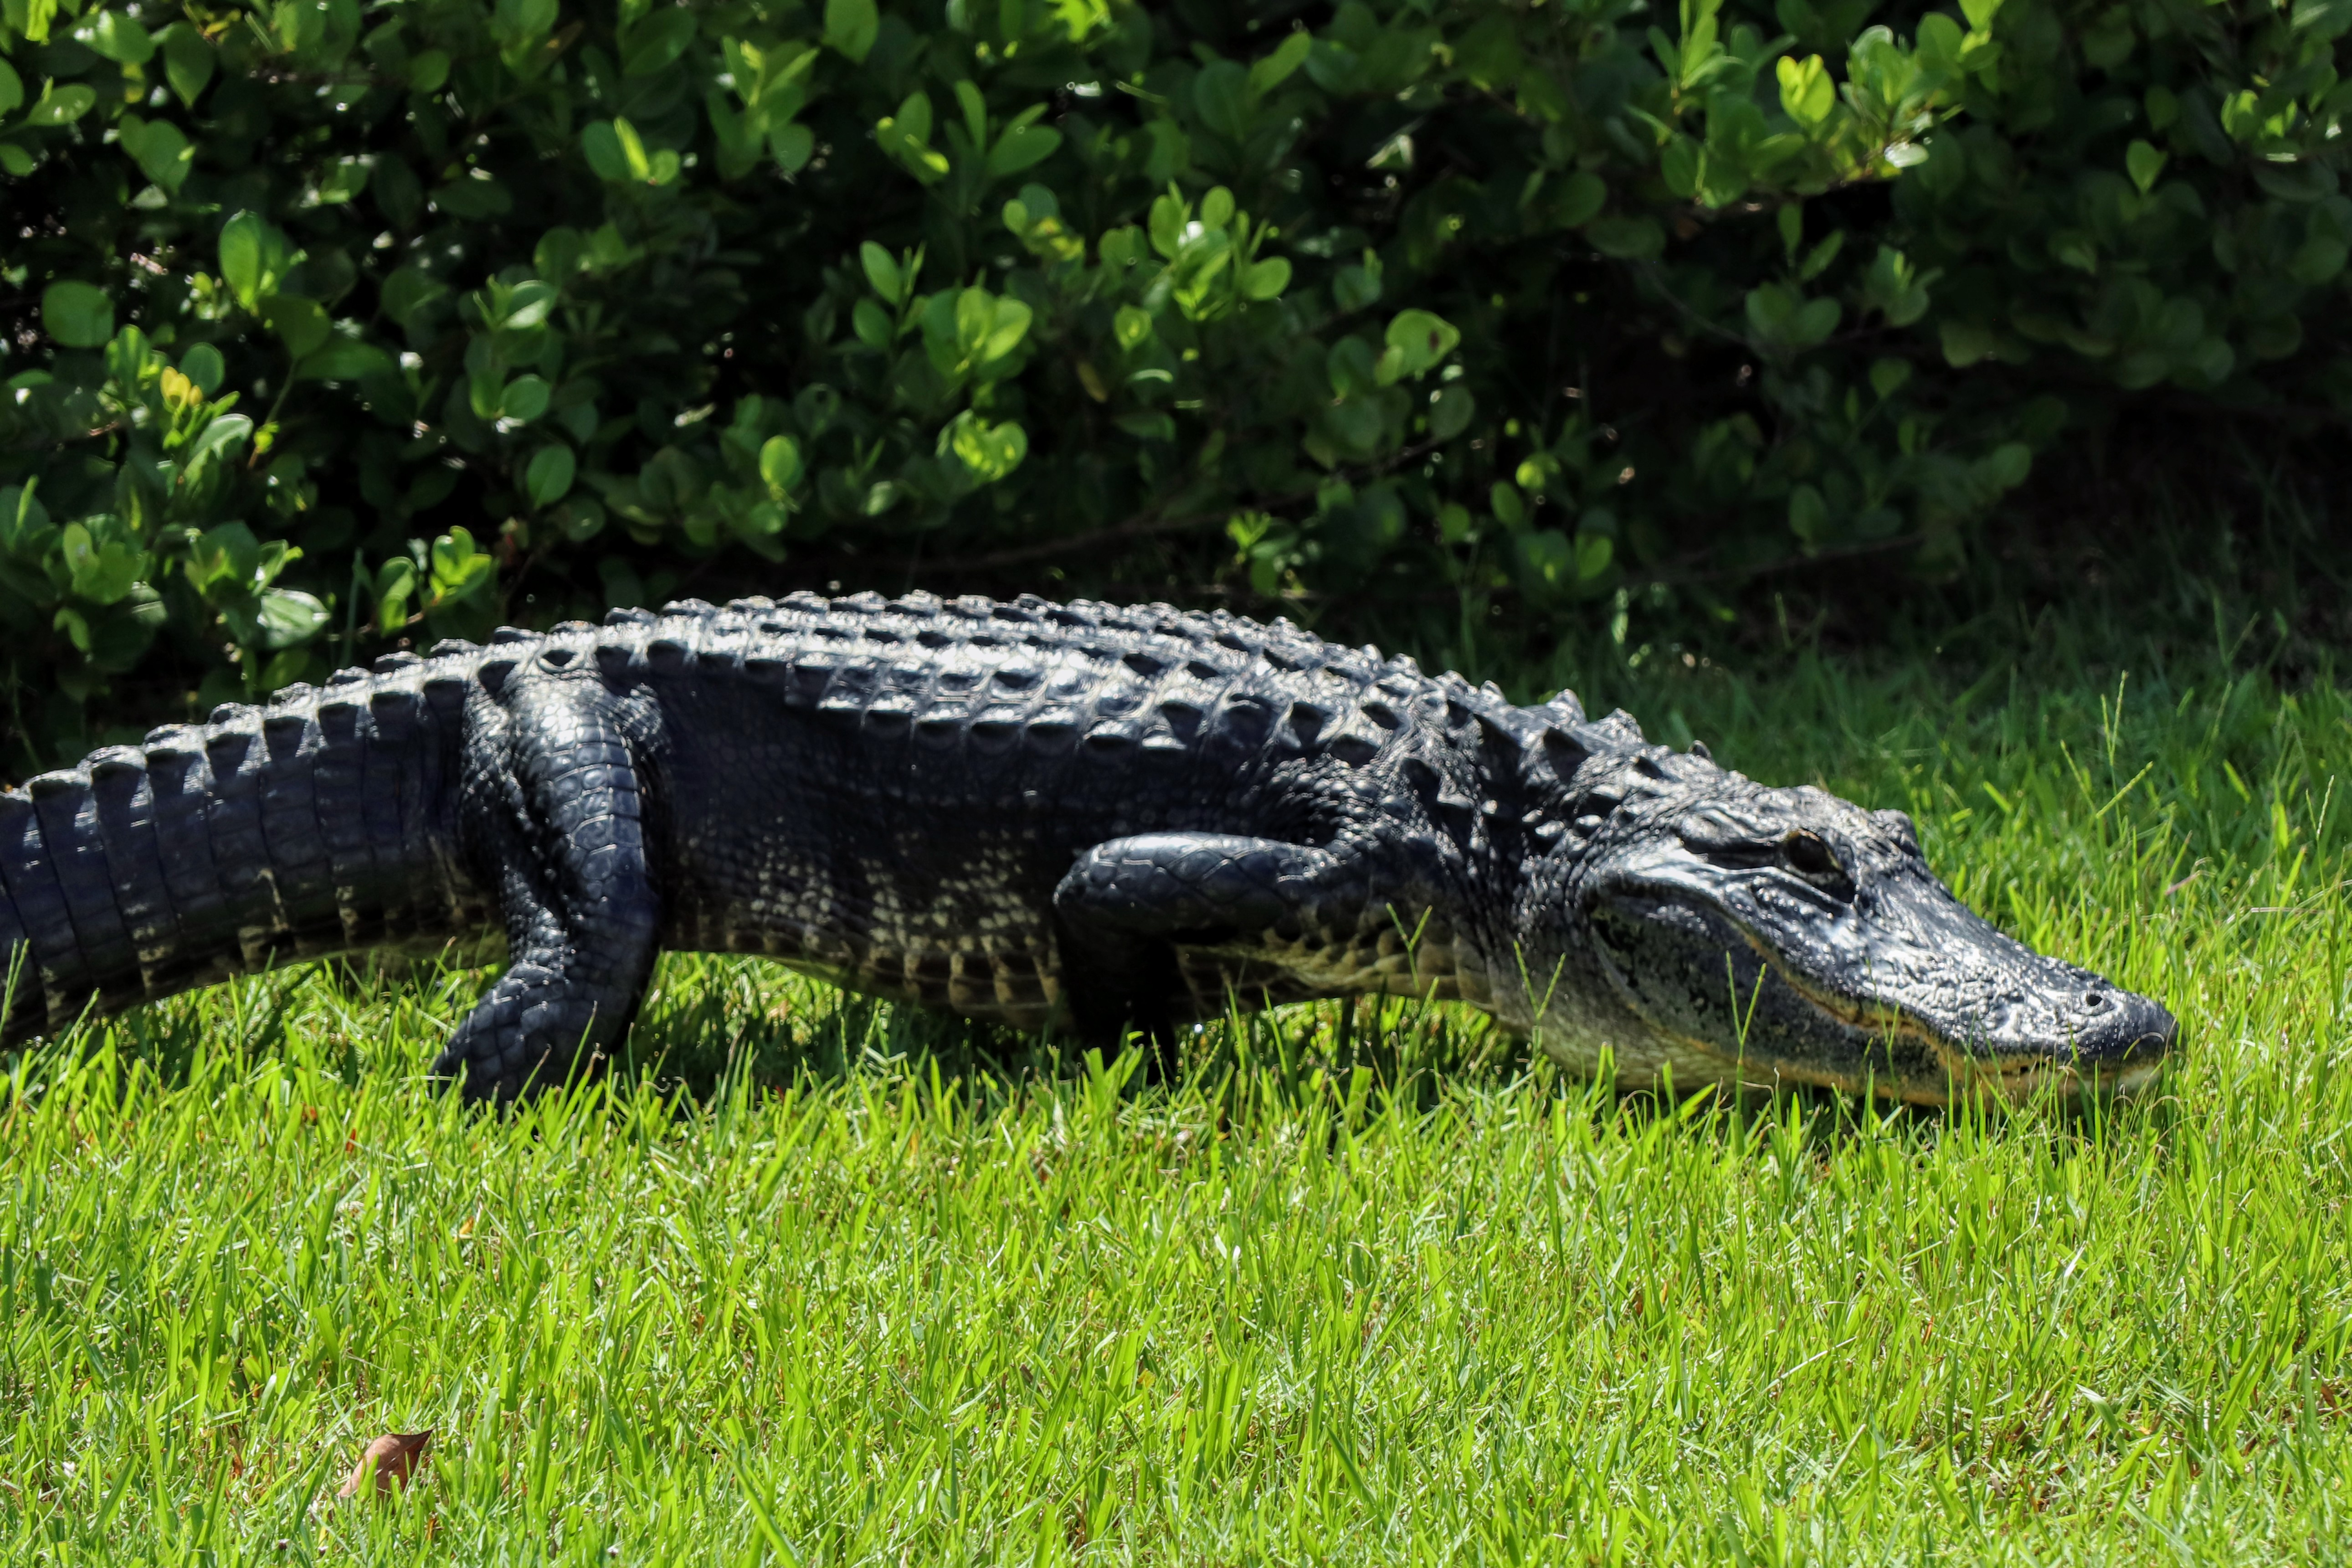 American Alligator walking on the grass - Shark Valley Everglades National Park